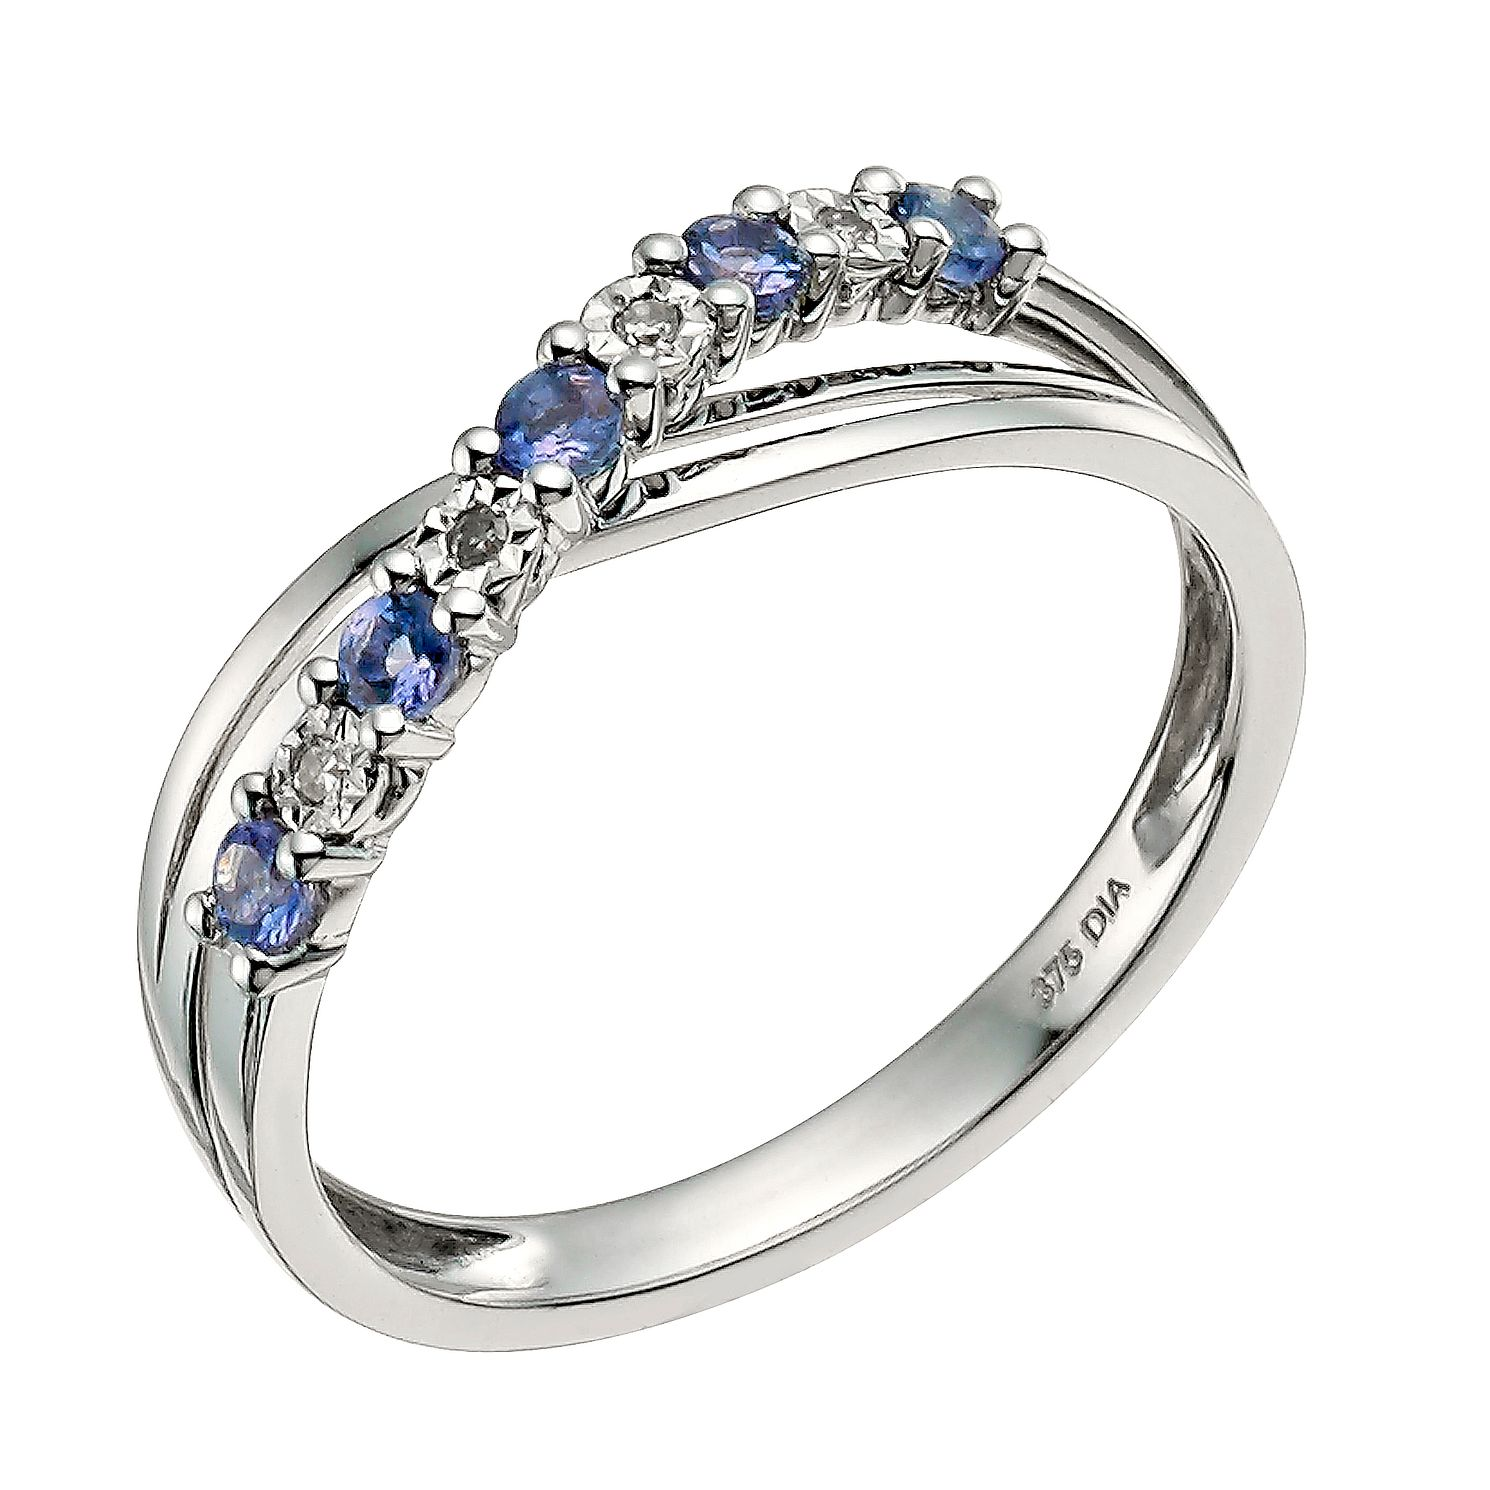 infinity dtg own diamond a in and white design your ring gold rings bpid tanzanite engagement